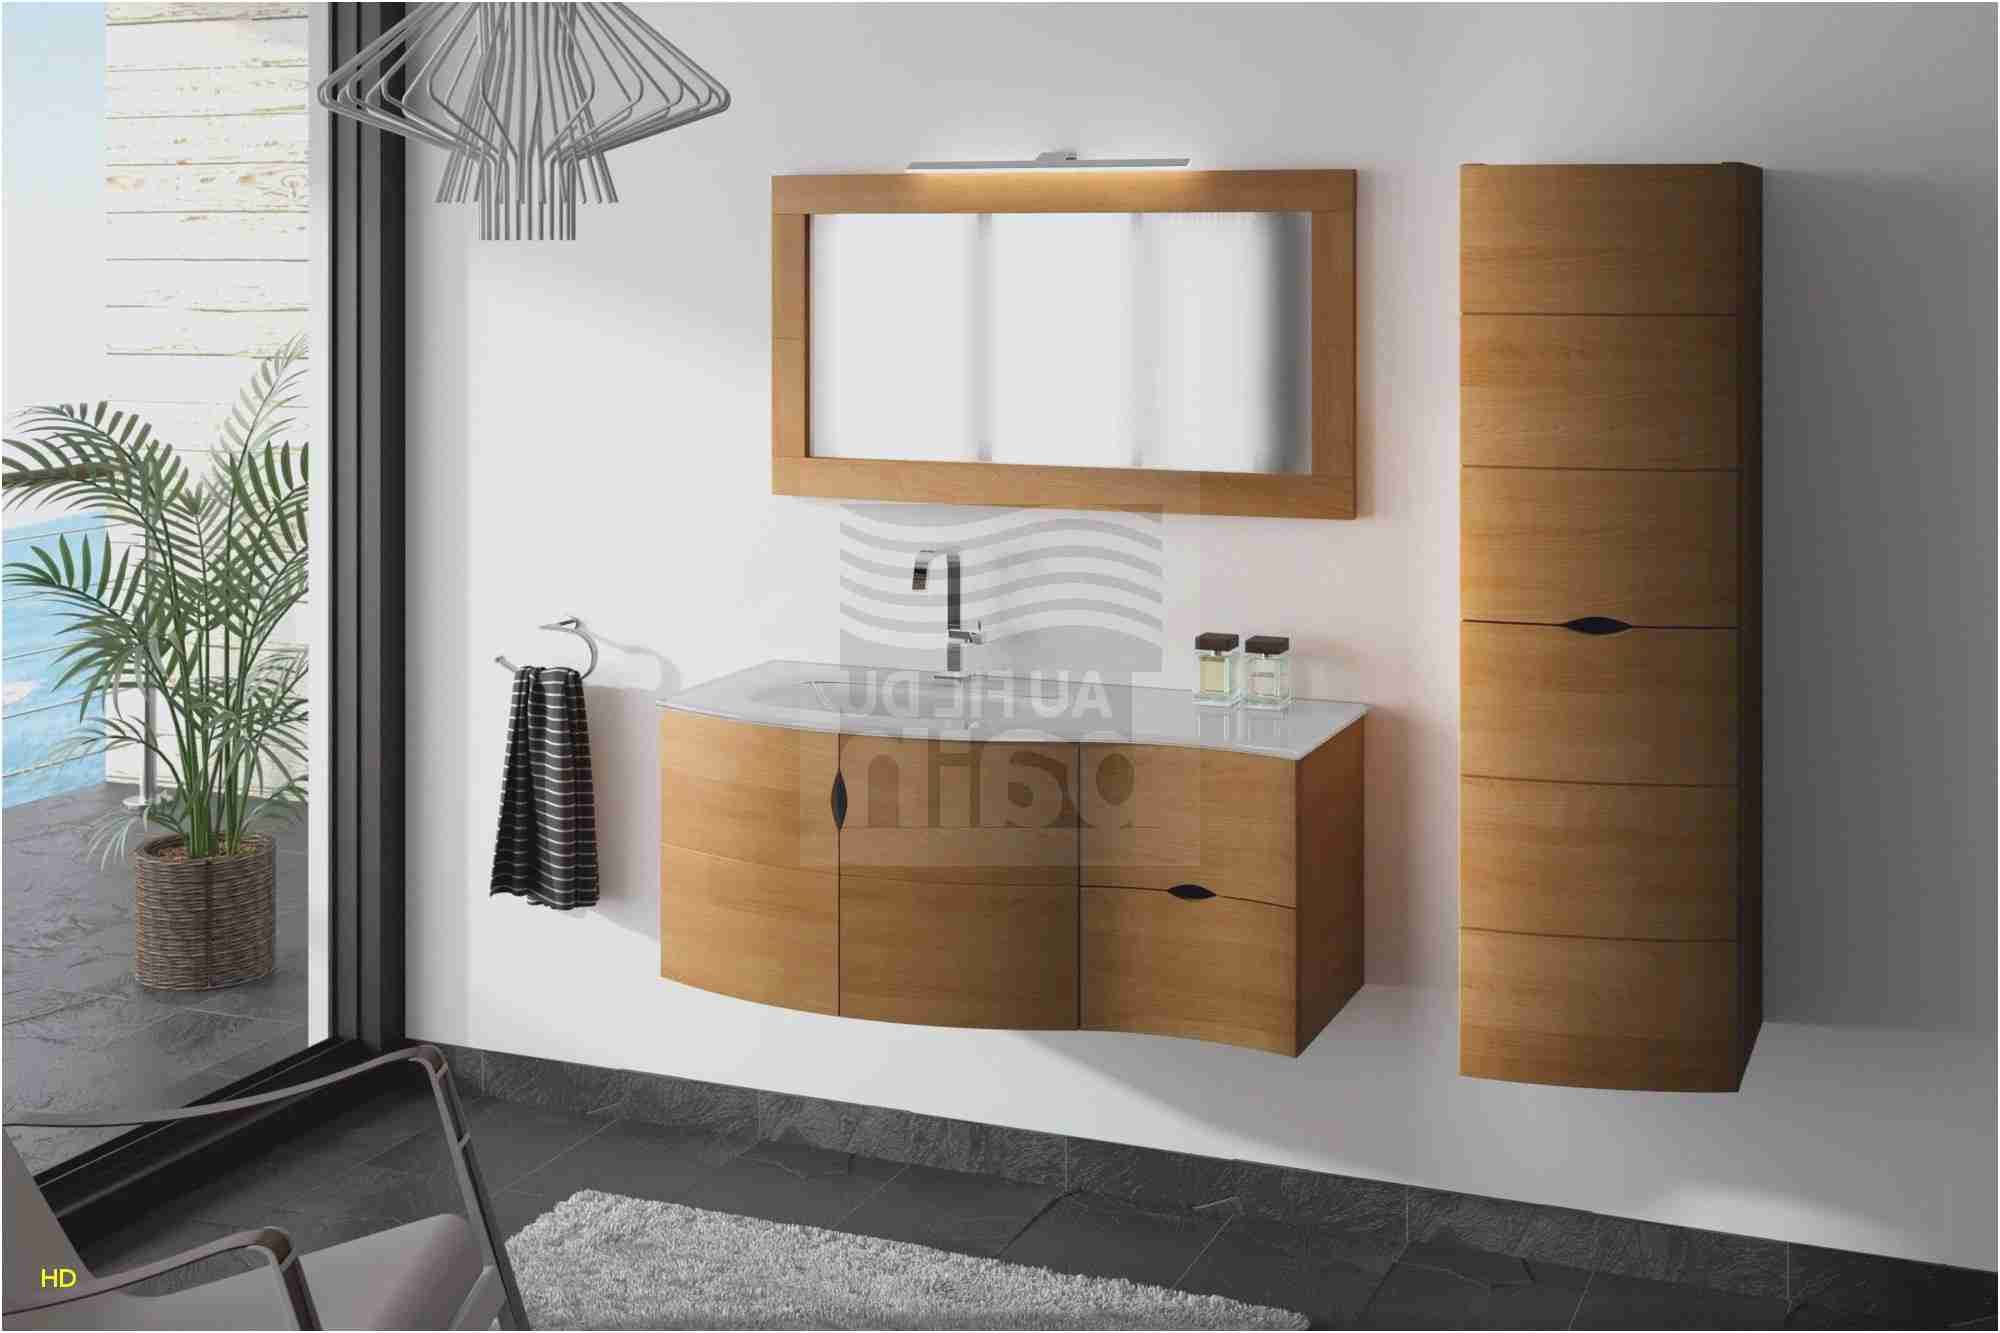 13 Pascher Meuble Salle De Bain Conforama | Table Design di 2019